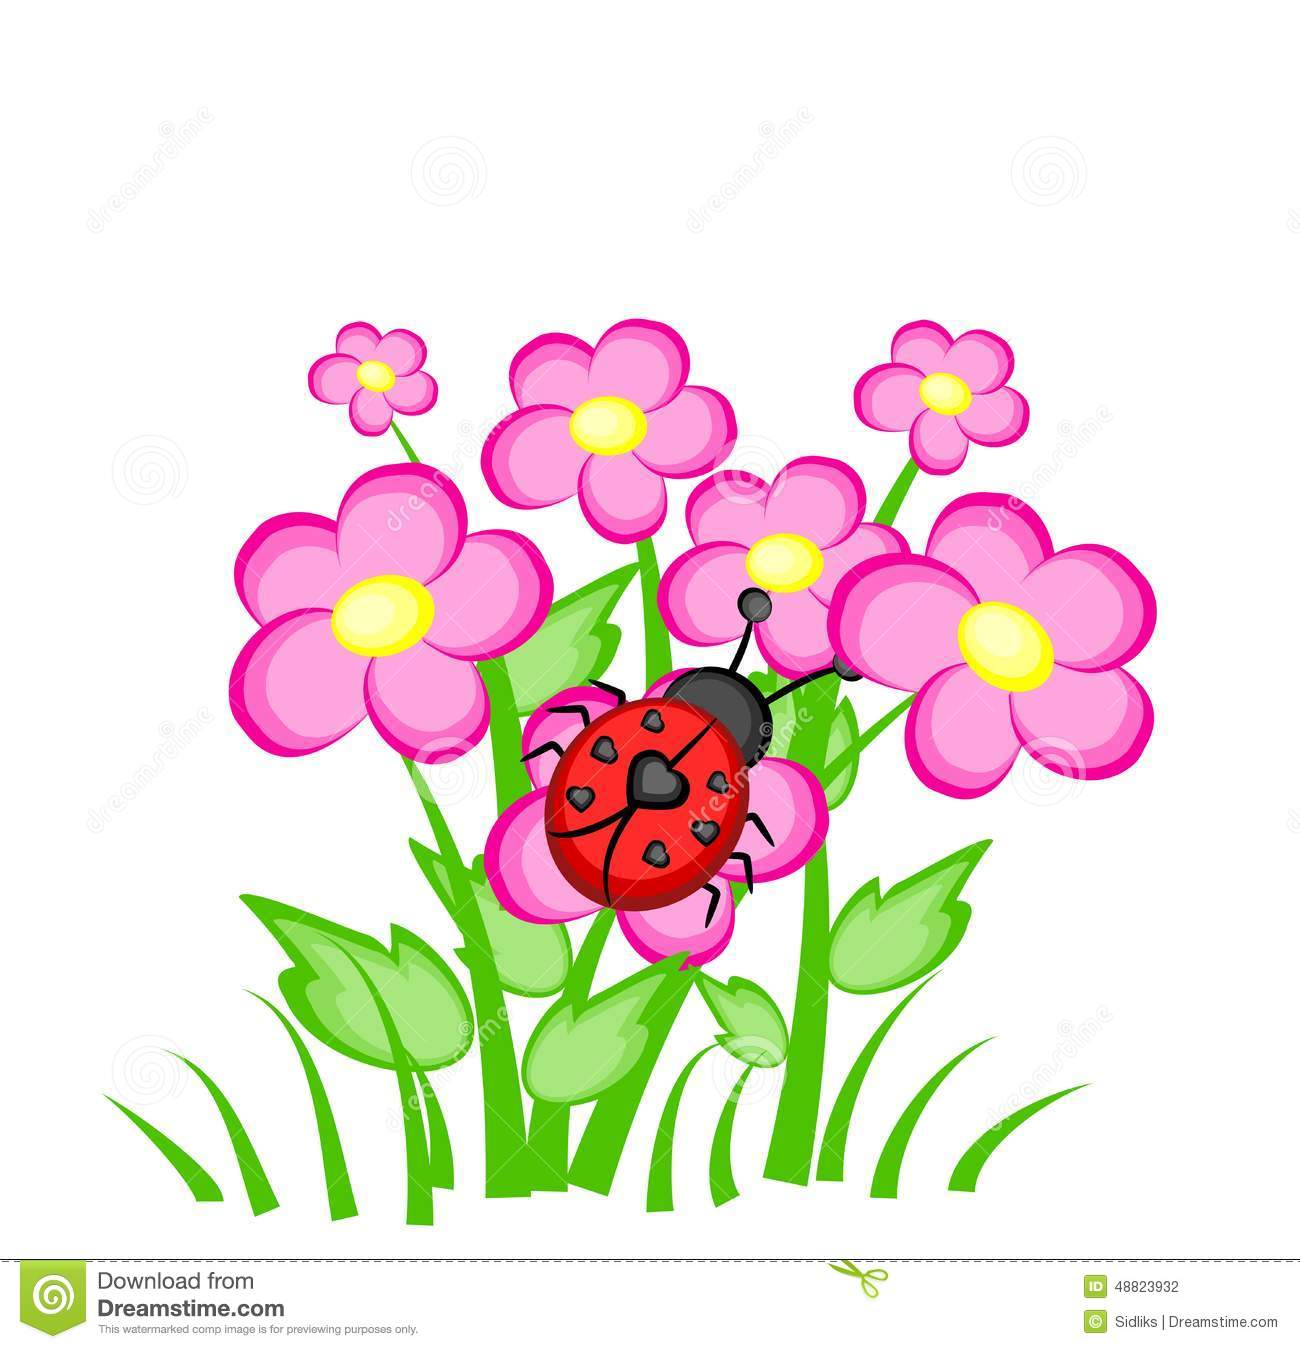 Cartoon Ladybug On Flowers Stock Illustration Illustration Of